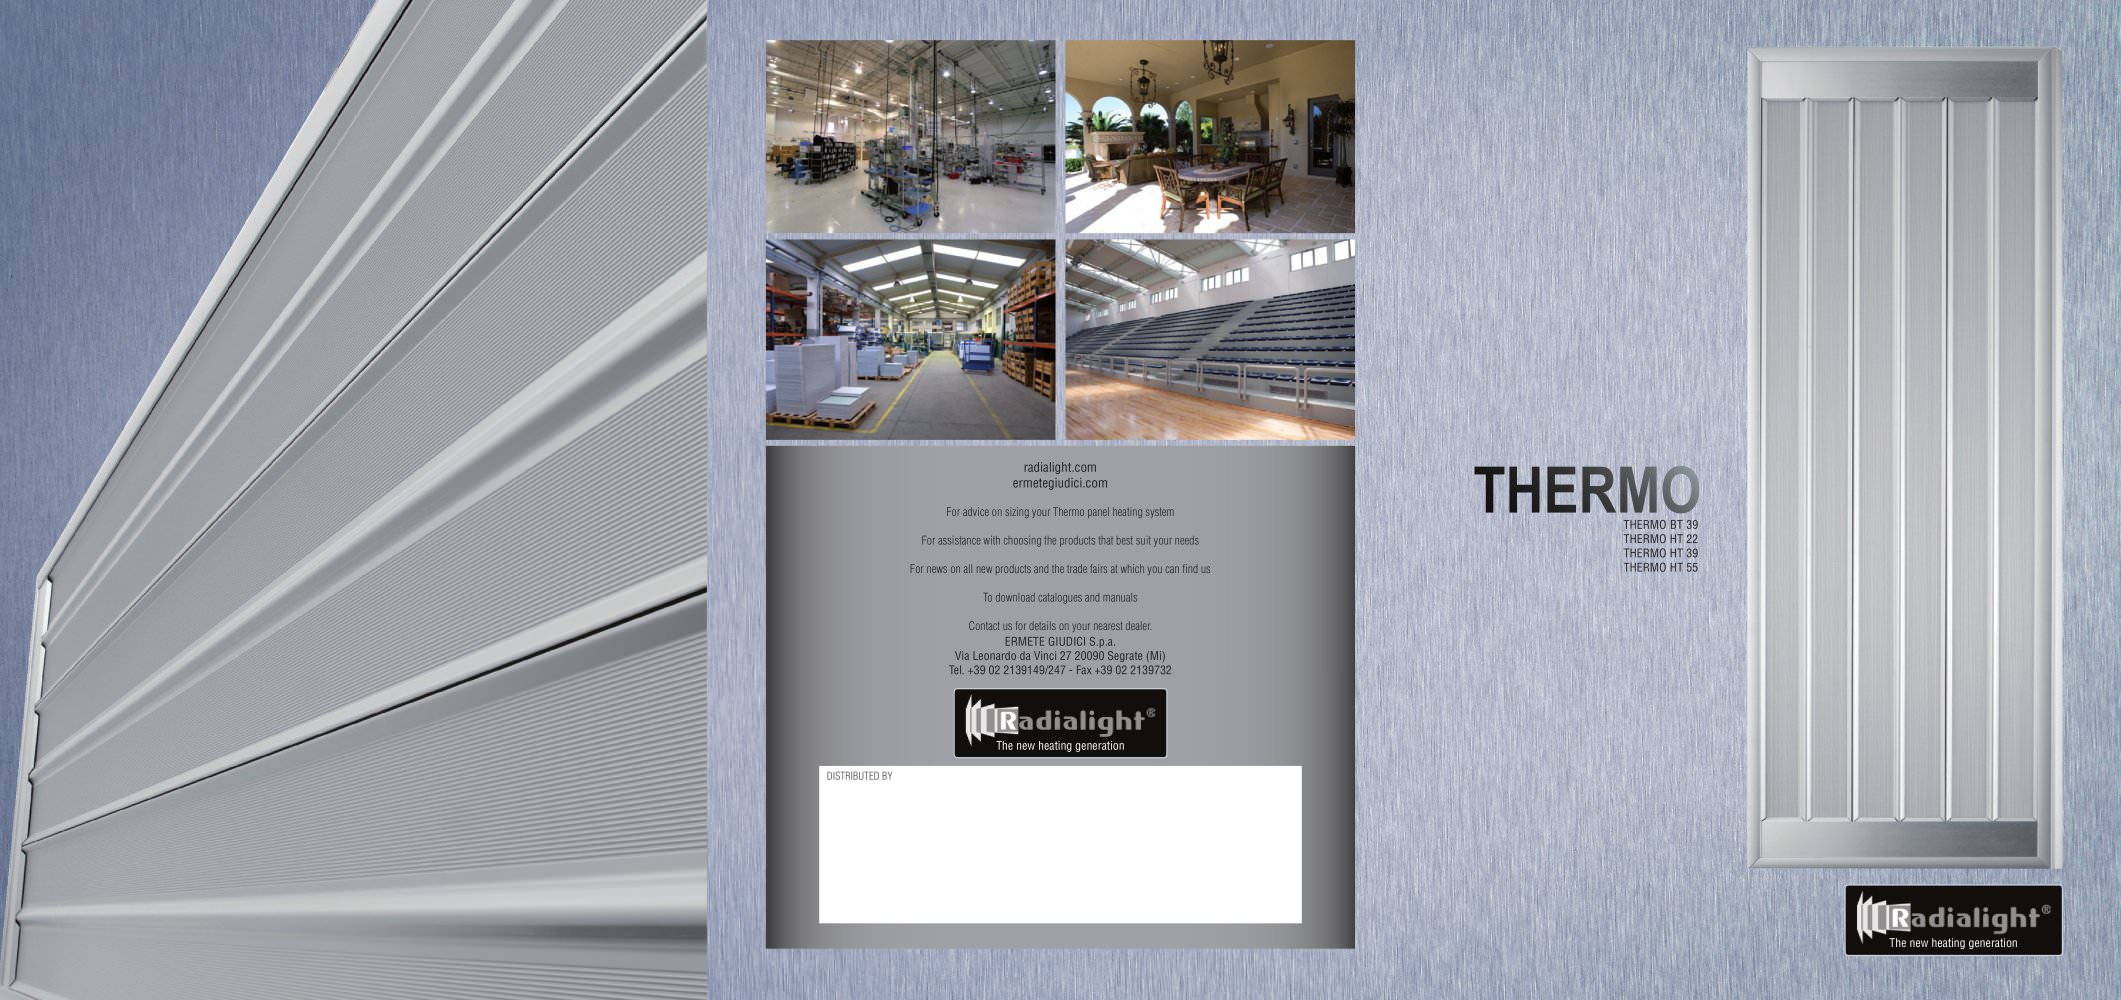 THERMO radiant ceiling heating panel Radialight PDF